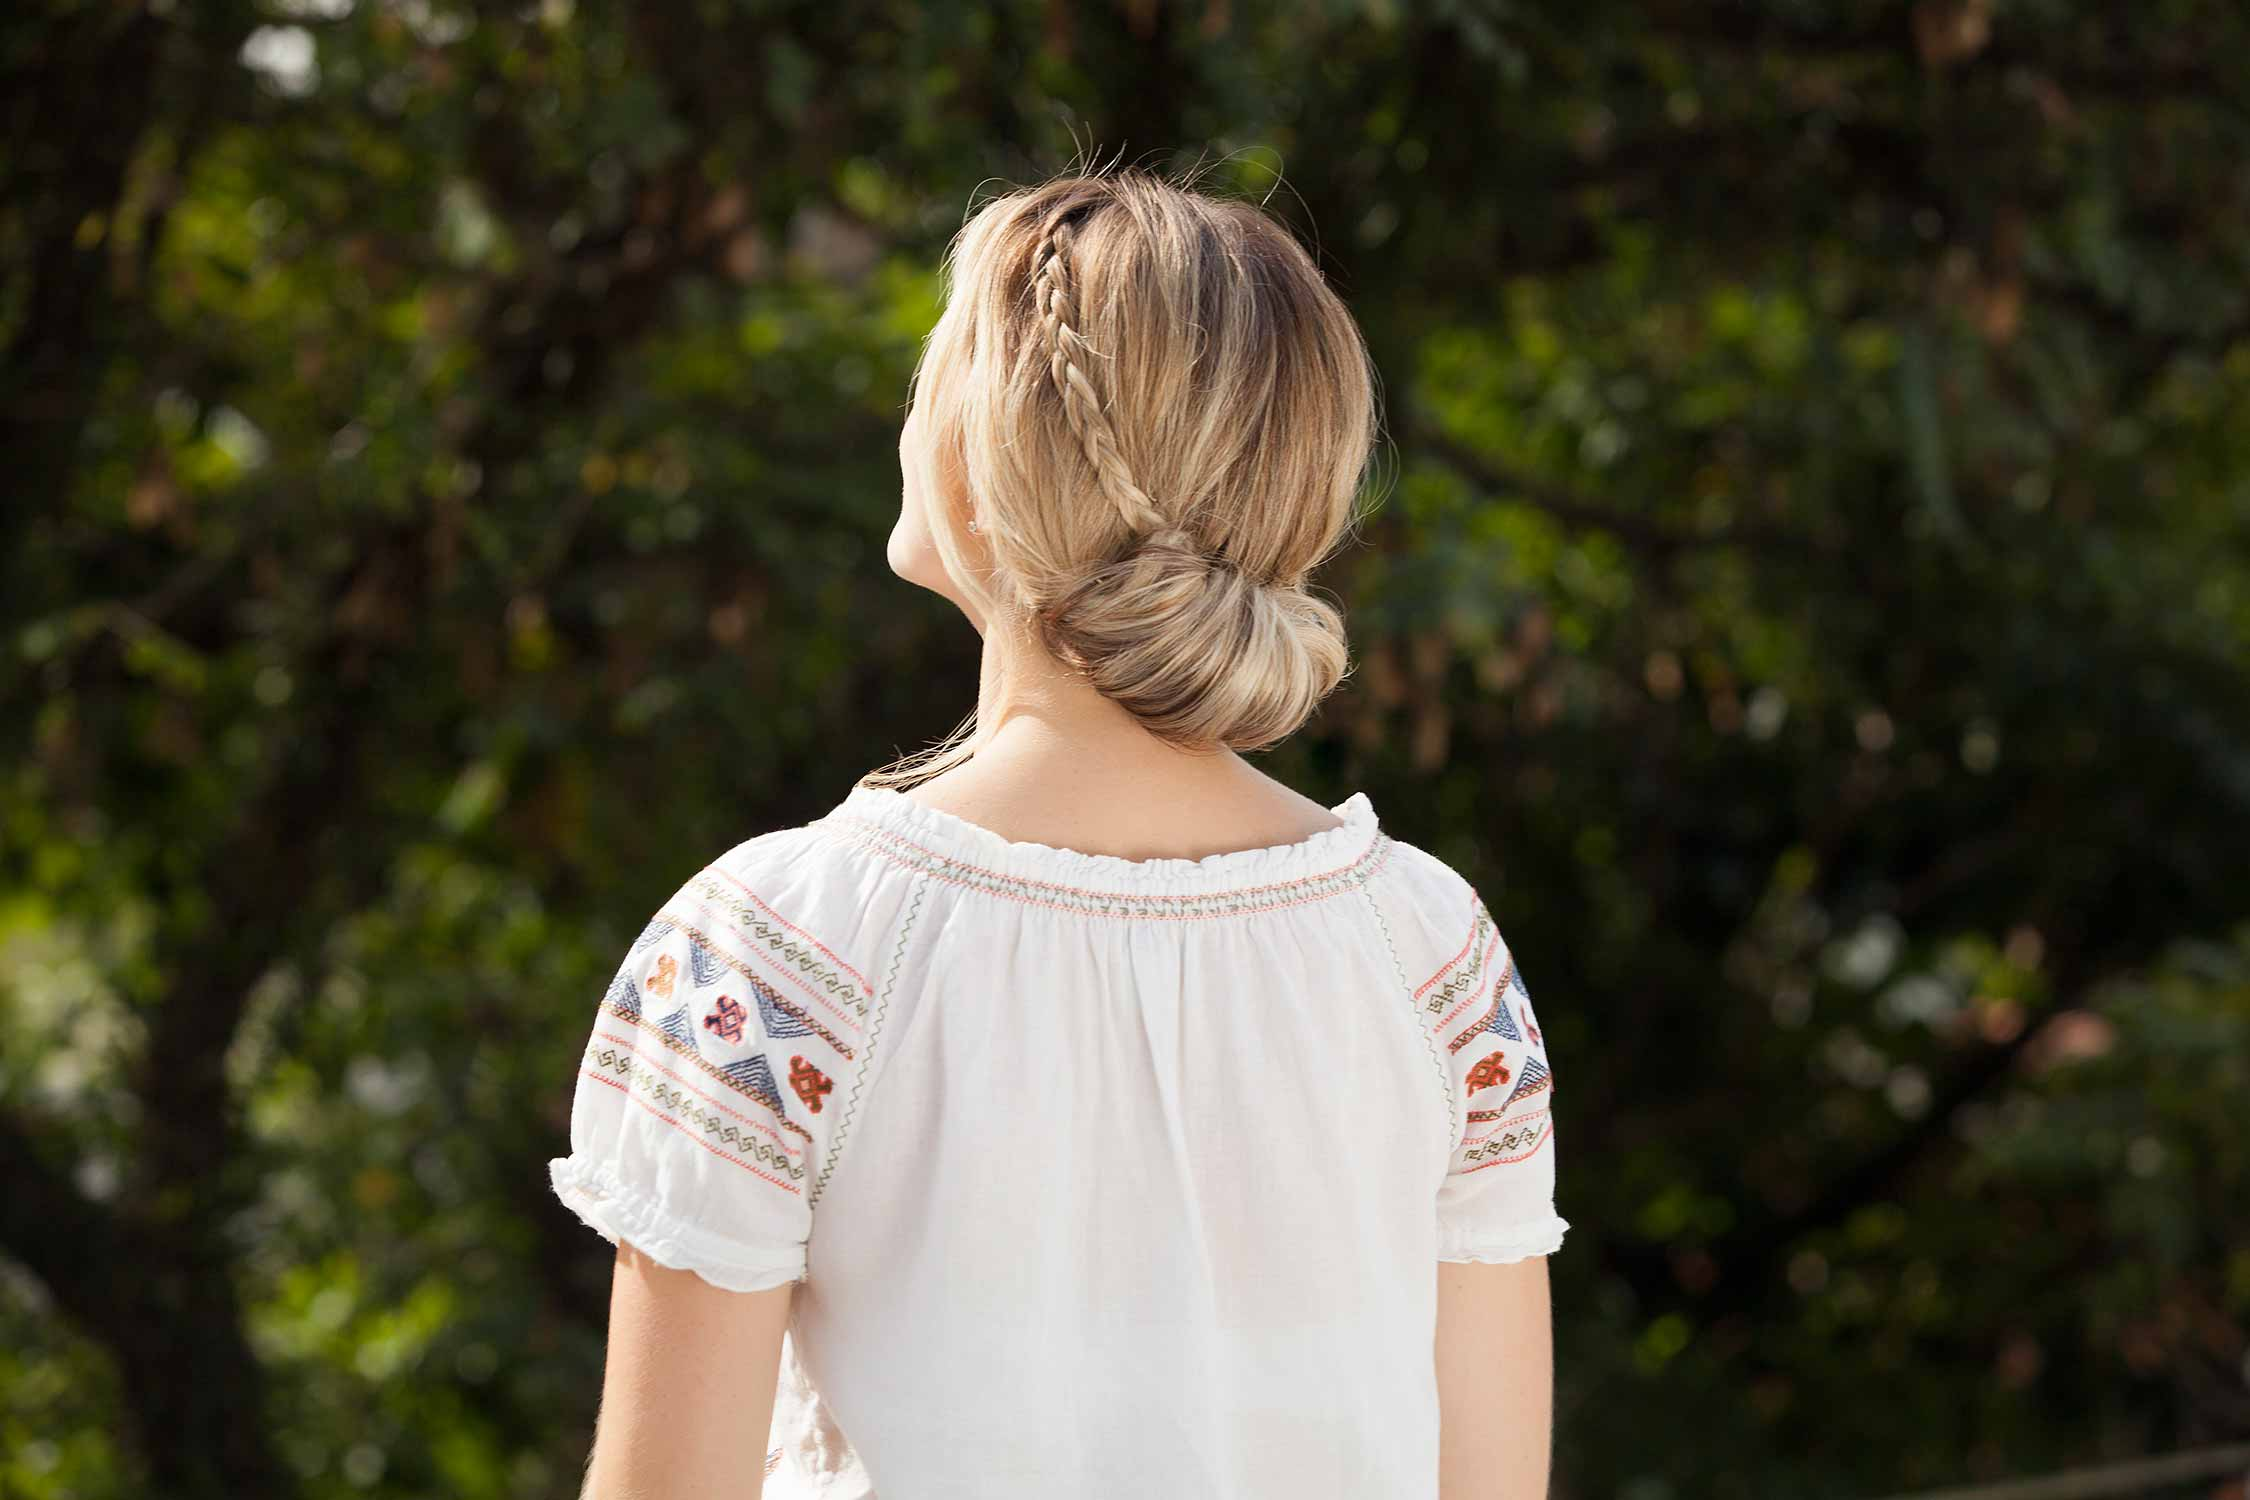 back view of woman with a low chignon bun and small braid in blonde hair